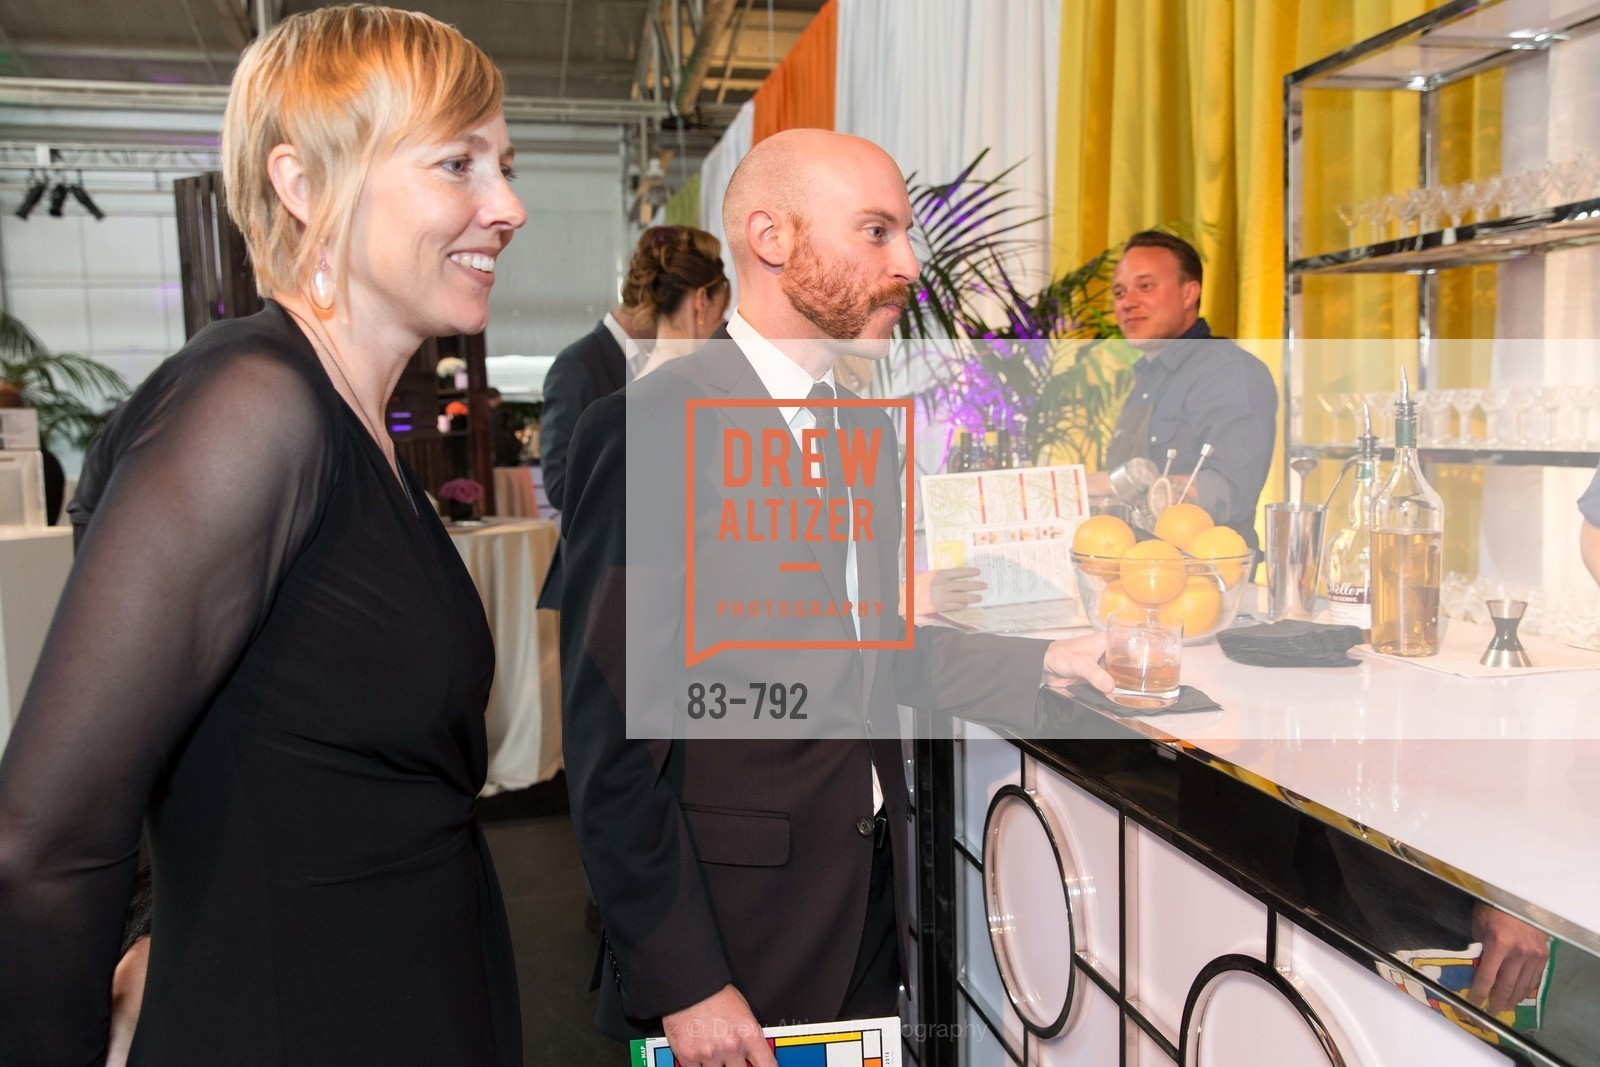 Tara Windler, Jeremy French, MEALS ON WHEELS OF SAN FRANCISCO'S 28th Annual Star Chefs and Vintners Gala, US, April 19th, 2015,Drew Altizer, Drew Altizer Photography, full-service agency, private events, San Francisco photographer, photographer california